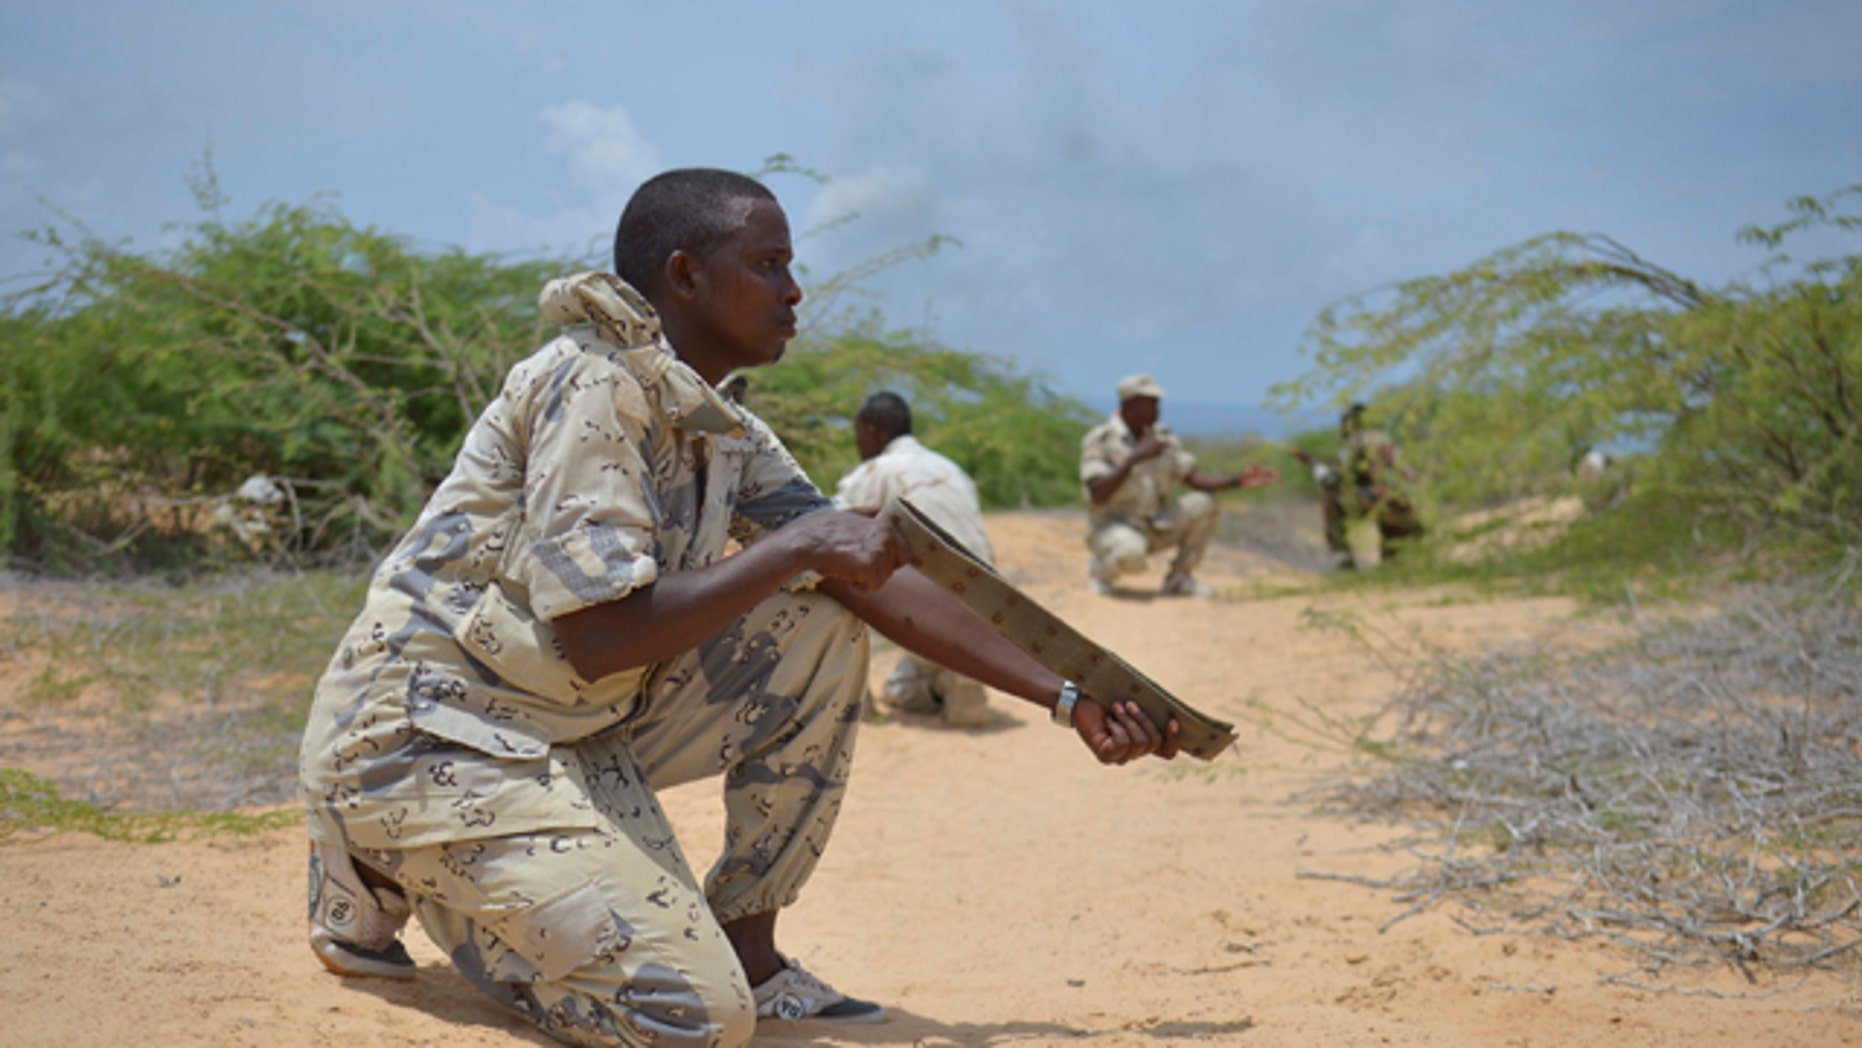 Mar. 29, 2013: A soldier from the Somali National Army (SNA) uses a belt acting as a weapon during a training exercise in Mogadishu.